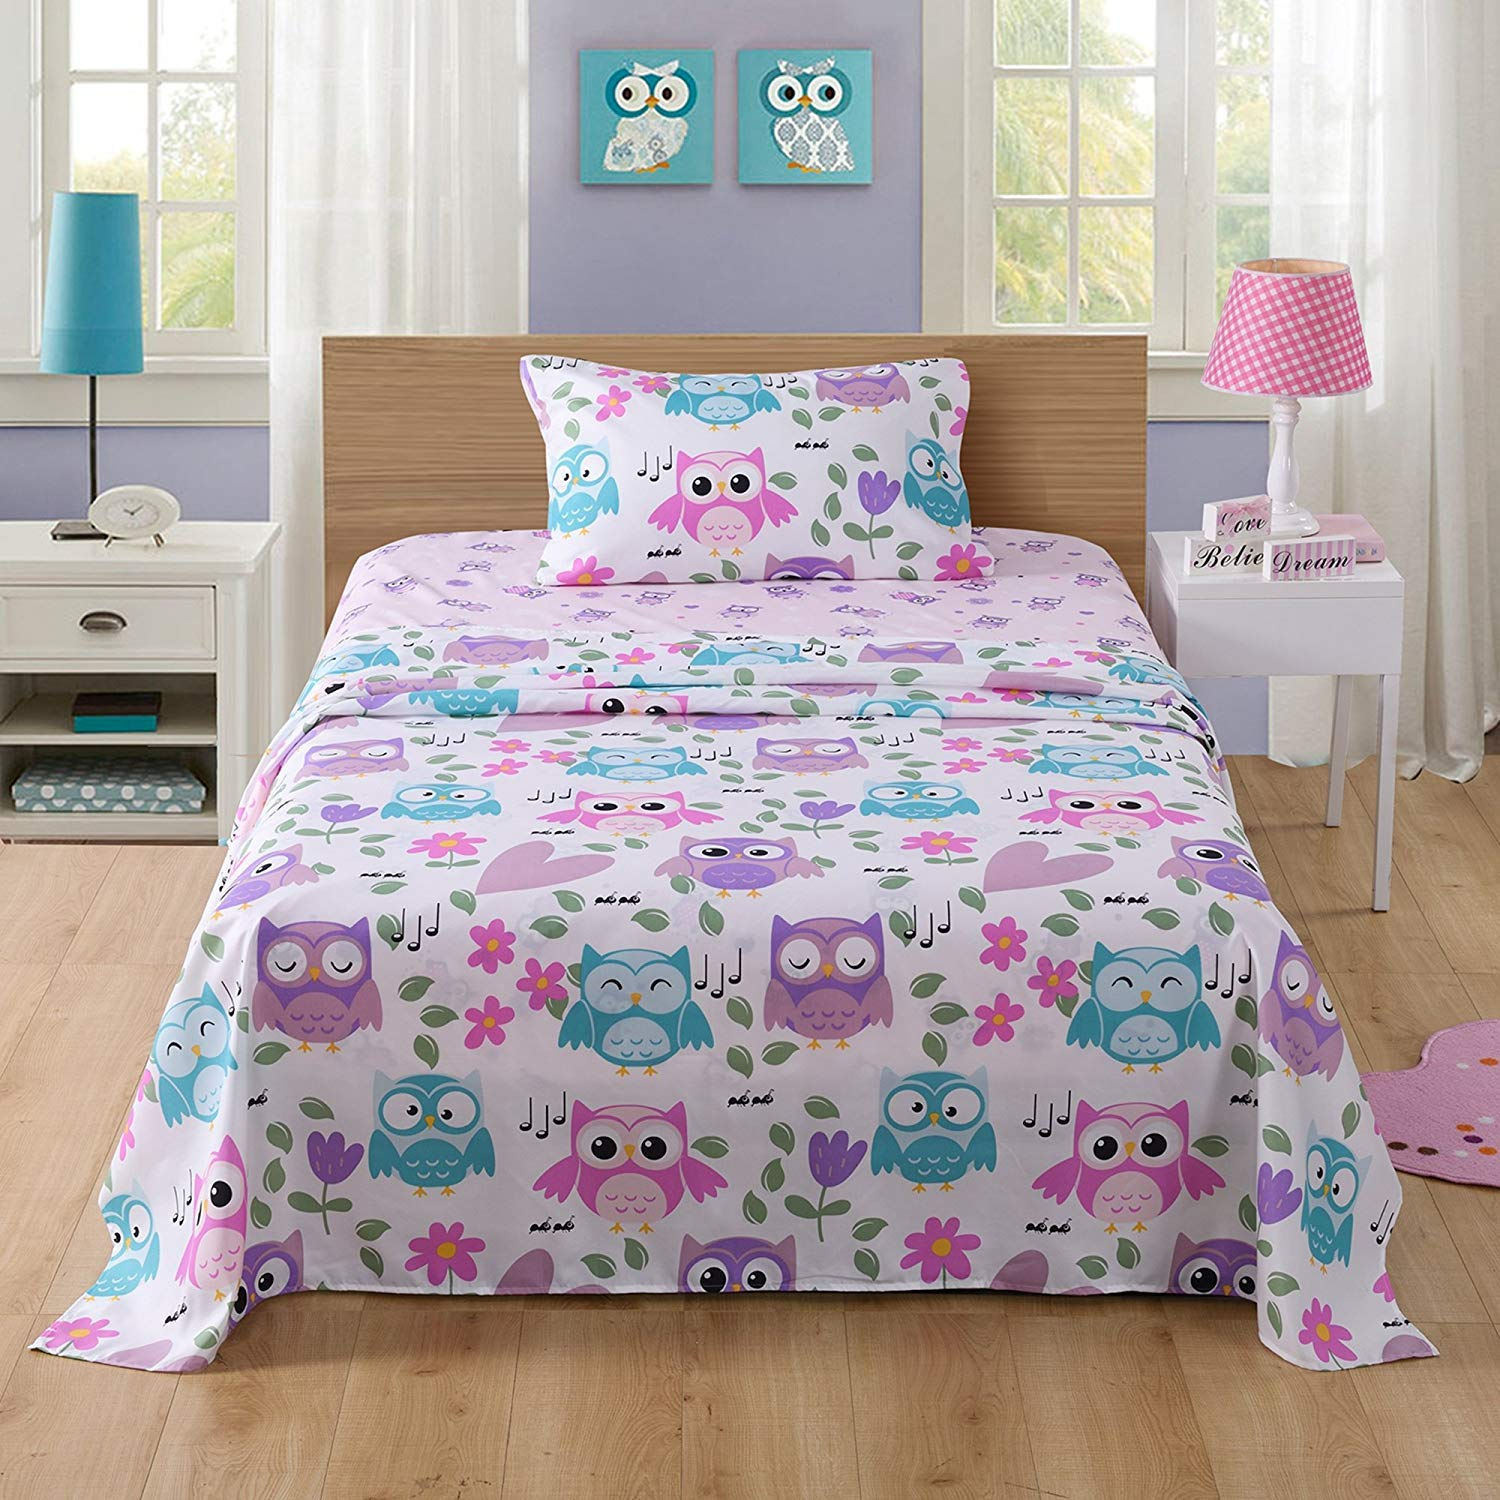 MarCielo Bed Sheets for Kids Twin Sheets for Kids Girls Boys Teens Children Sheets Soft Fitted Flat Printed Sheet Pillowcase Kids Bedding Bunk Beds Set Owl (Twin)